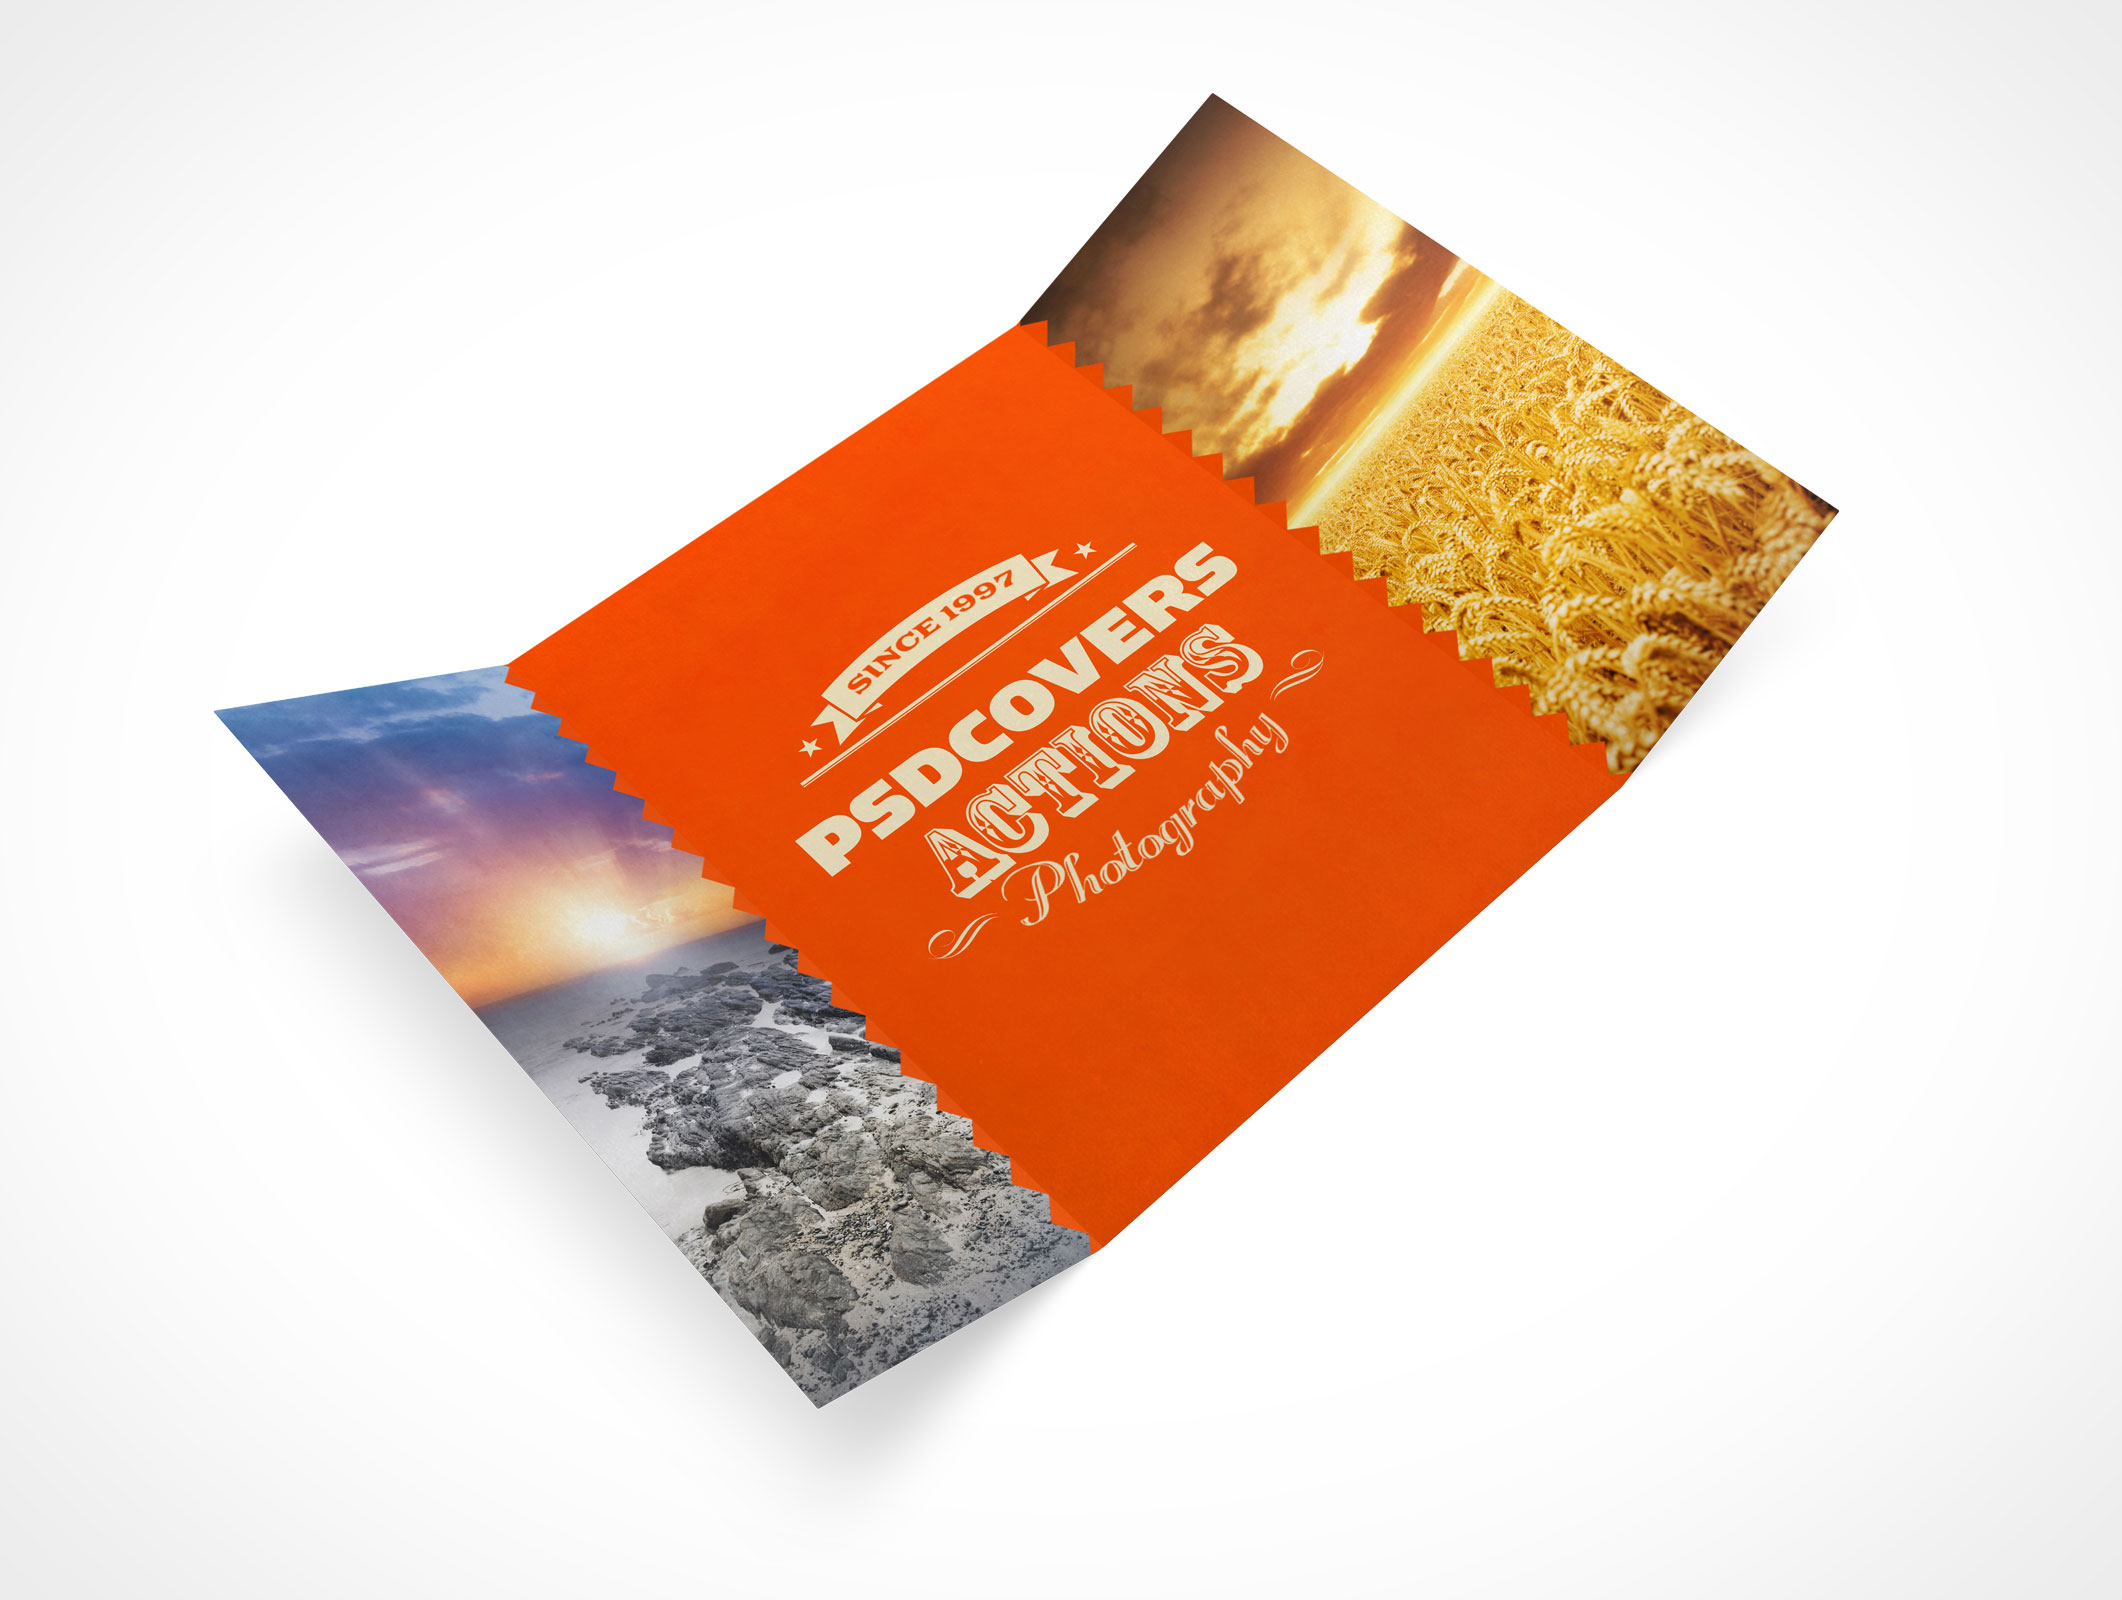 PSD Mockup 3 Panel Gate Fold Brochure Flyer Amazing Ideas